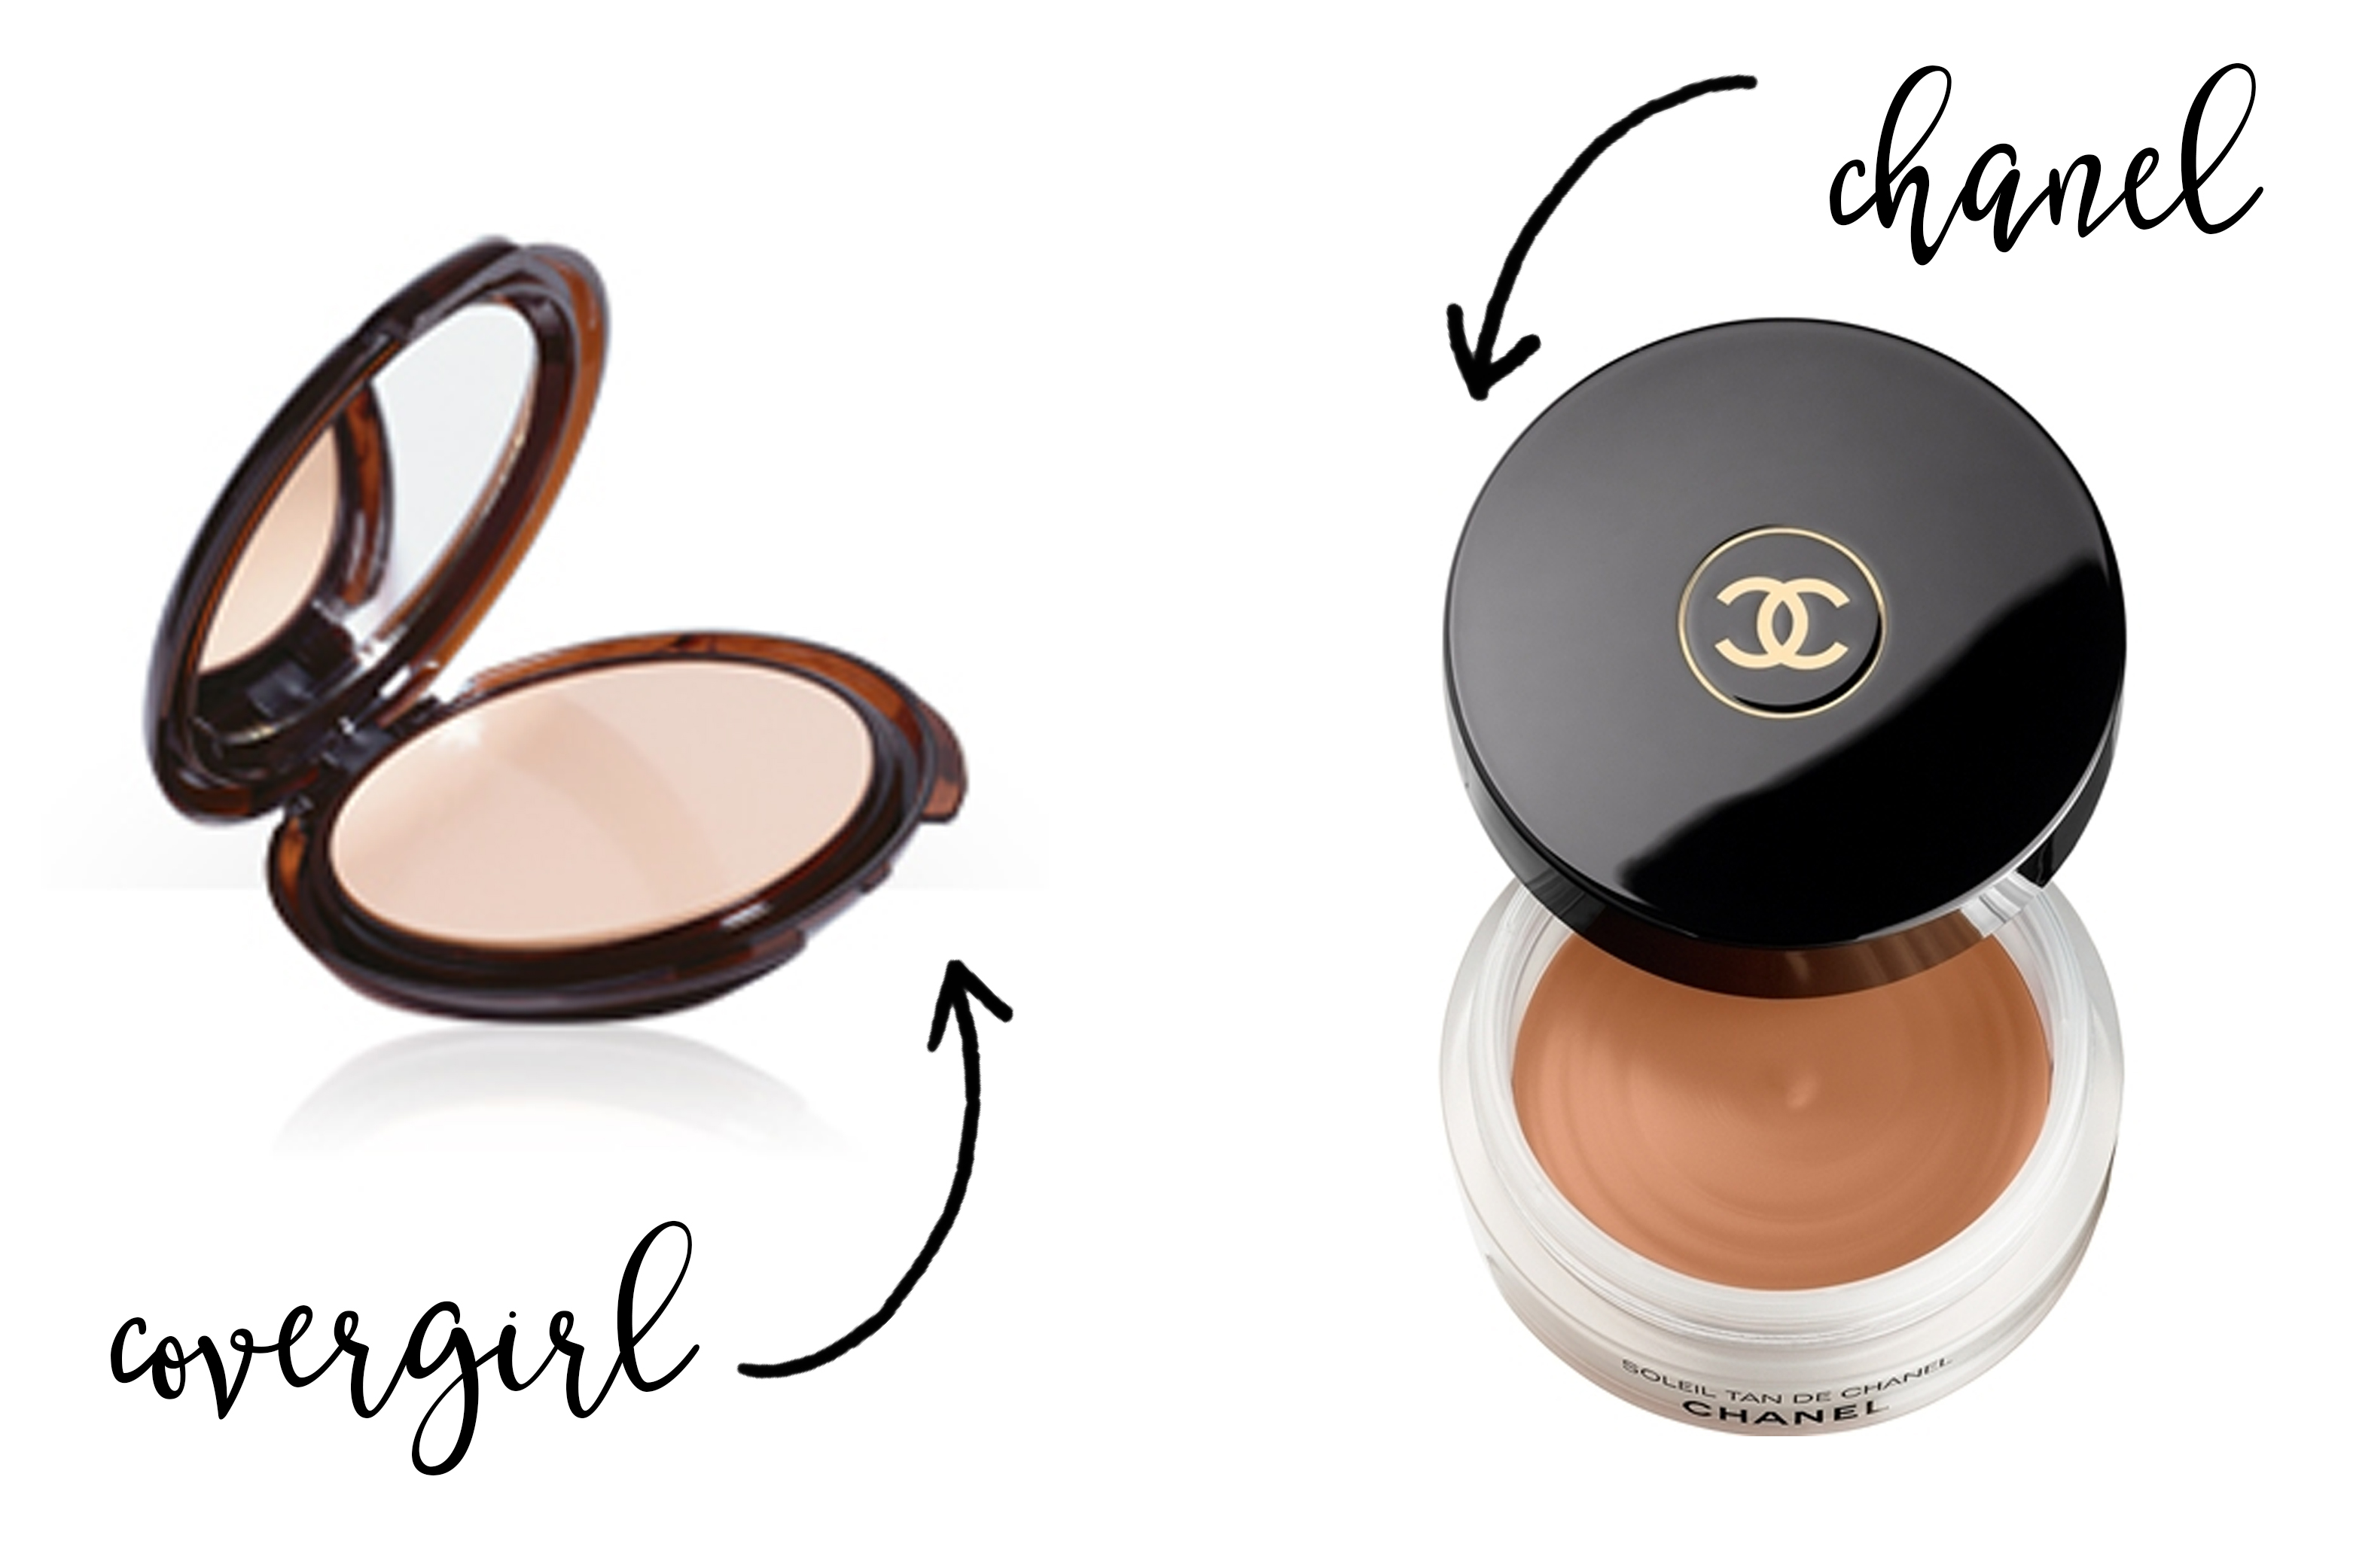 What beauty products did you use up? Which ones do you know you wont use up?